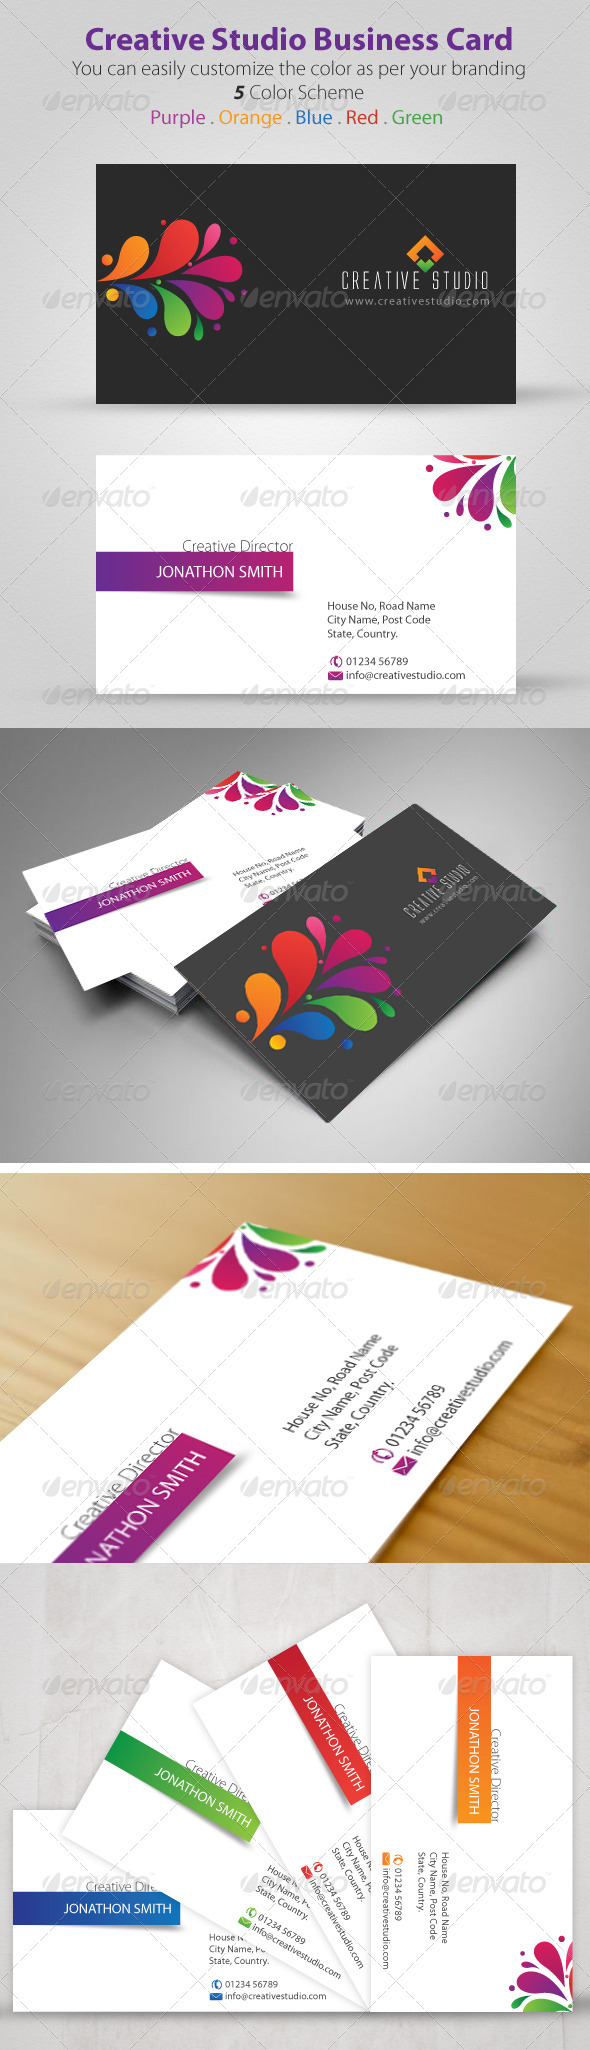 Creative Studio Business Card - Creative Business Cards